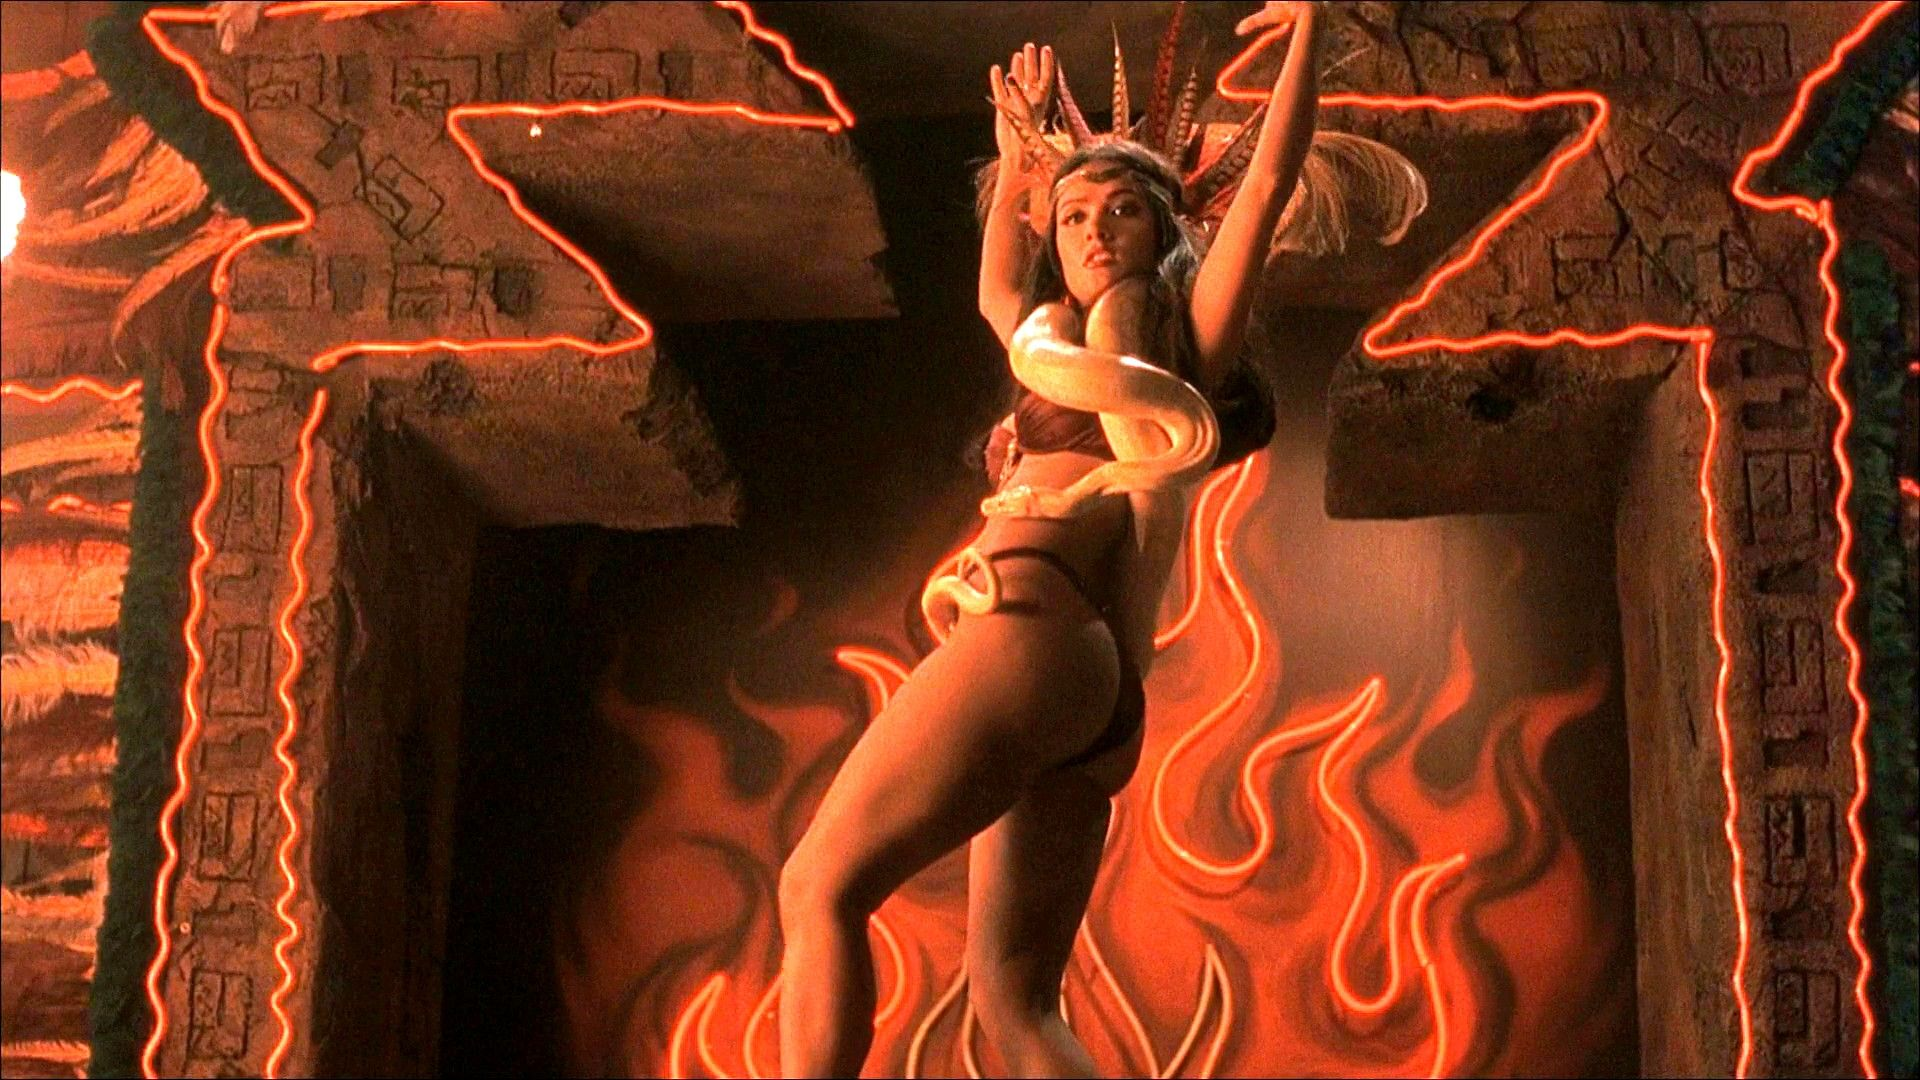 Photo Of Salma Hayek From From Dusk Till Dawn 1996 With Images